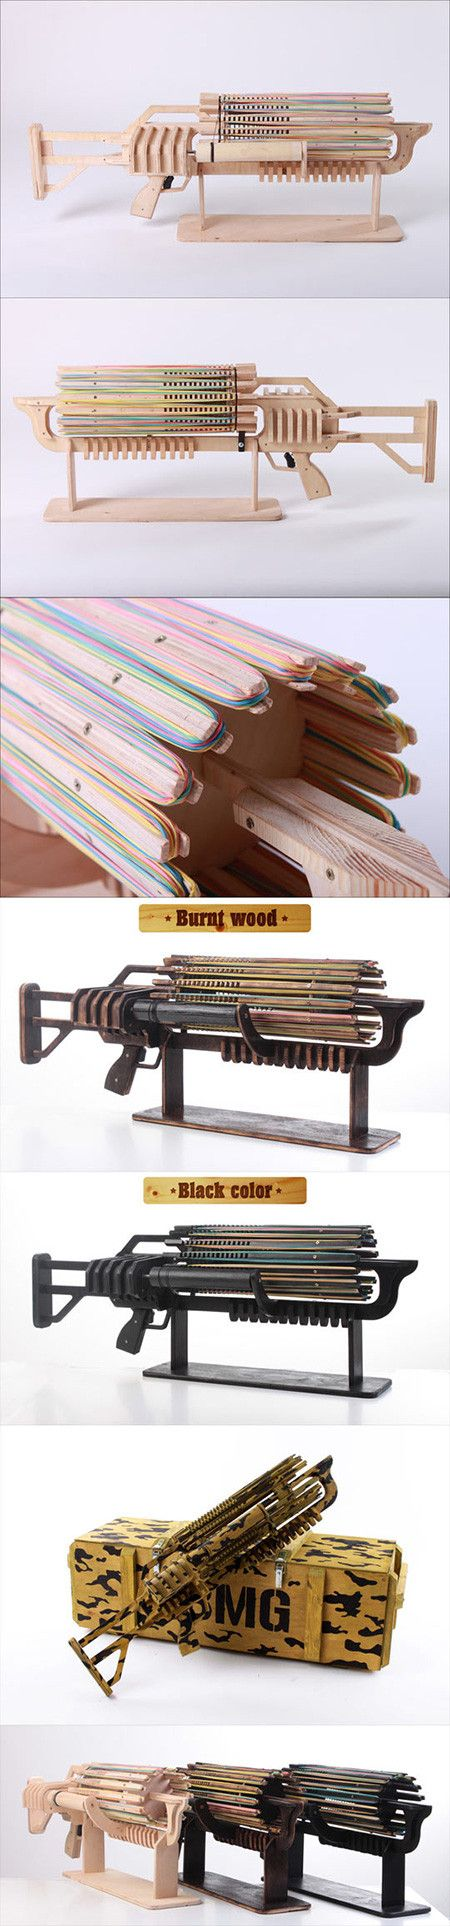 If you thought being flicked by a rubber band hurt, imagine being shot at by the Rubber Band Rambo Gatling gun that pings out 672 elastic stingers in just 48 seconds - that's 14 shots per second fired up to 26 feet.  Ukranian student and inventor Alexander Shpetniy created the gun with a $5,000 Kickstarter goal. He's now about to hit $100,000.